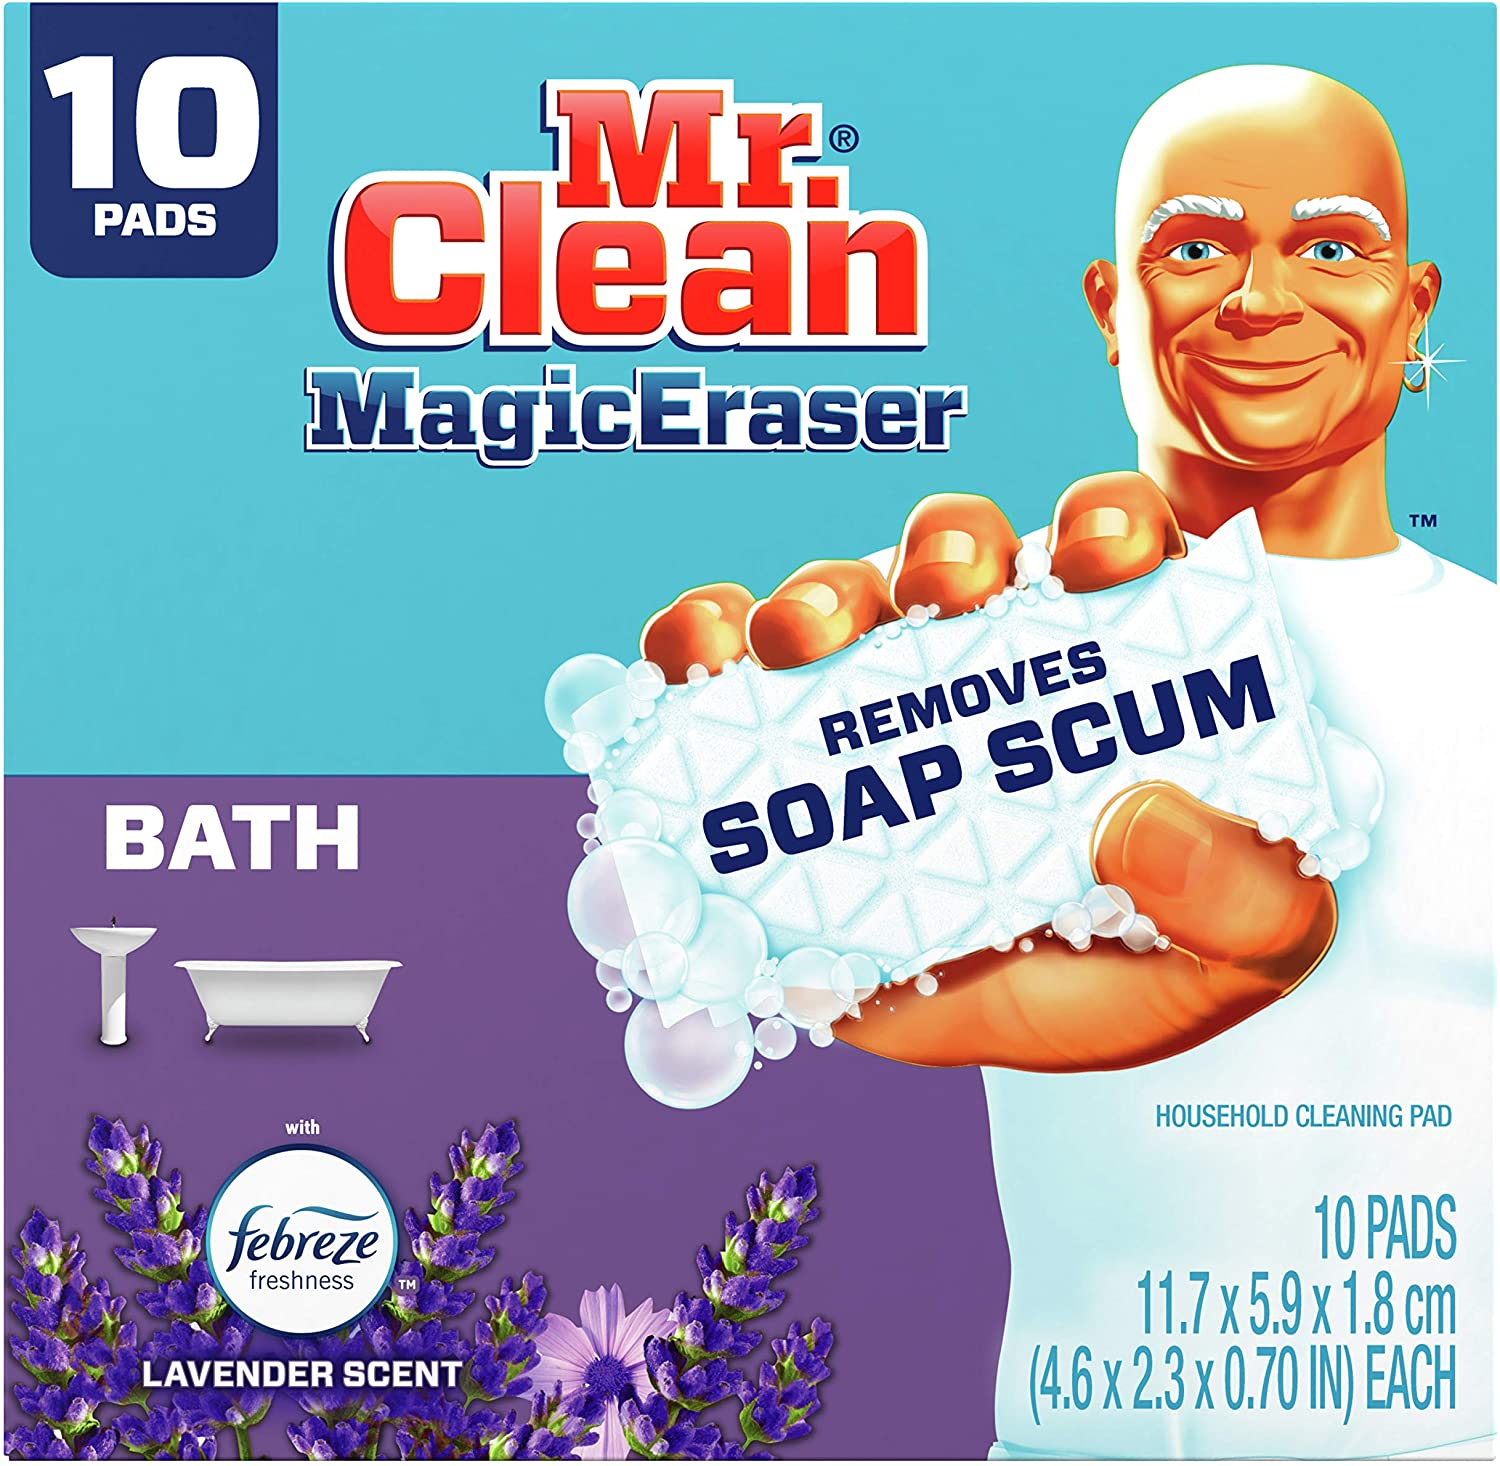 Mr. Clean Magic Eraser, Bathroom and Shower Cleaner with Febreze Lavender Scent, Cleaning Pads with Durafoam, 10 Count : Health & Household